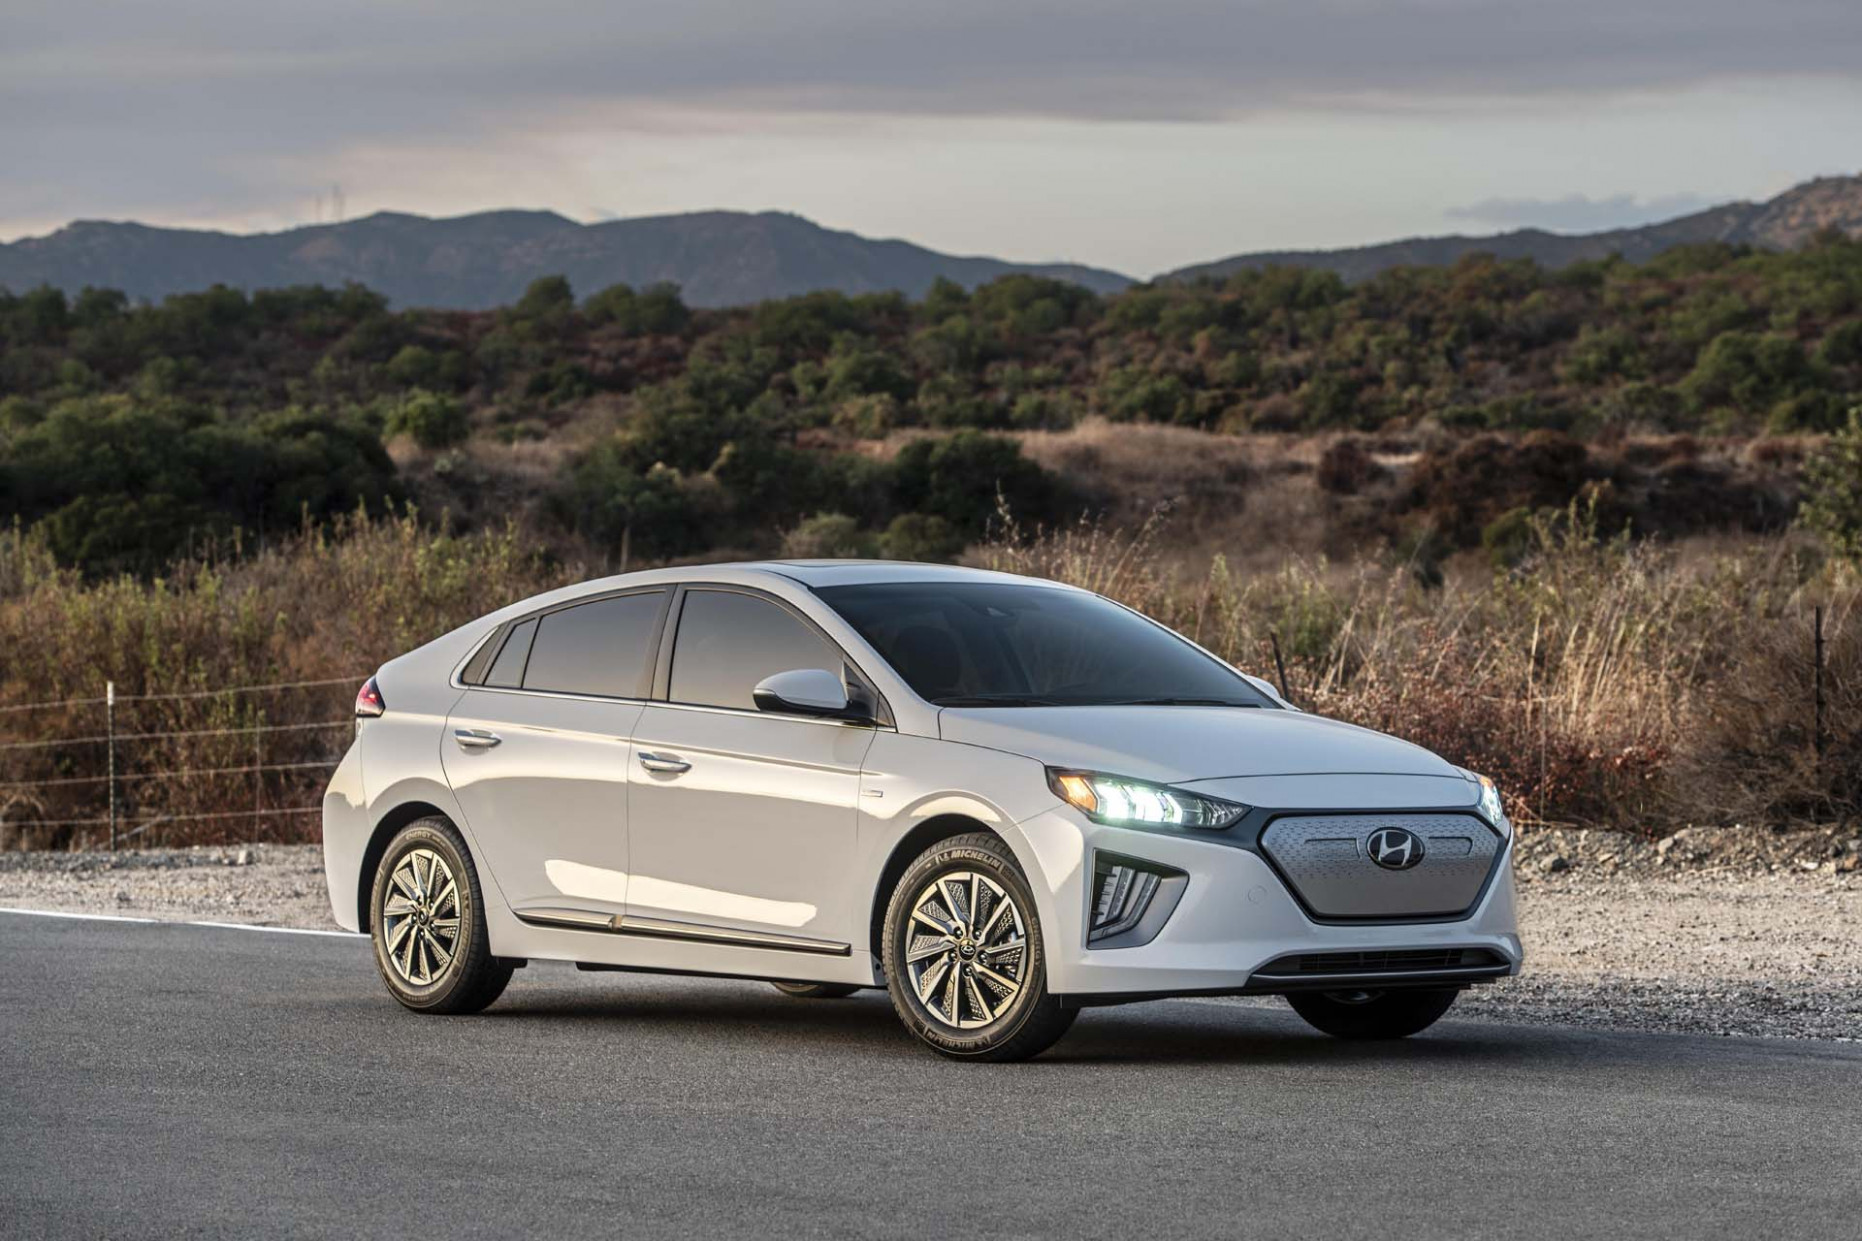 8 Hyundai Ioniq Review, Ratings, Specs, Prices, and Photos ...